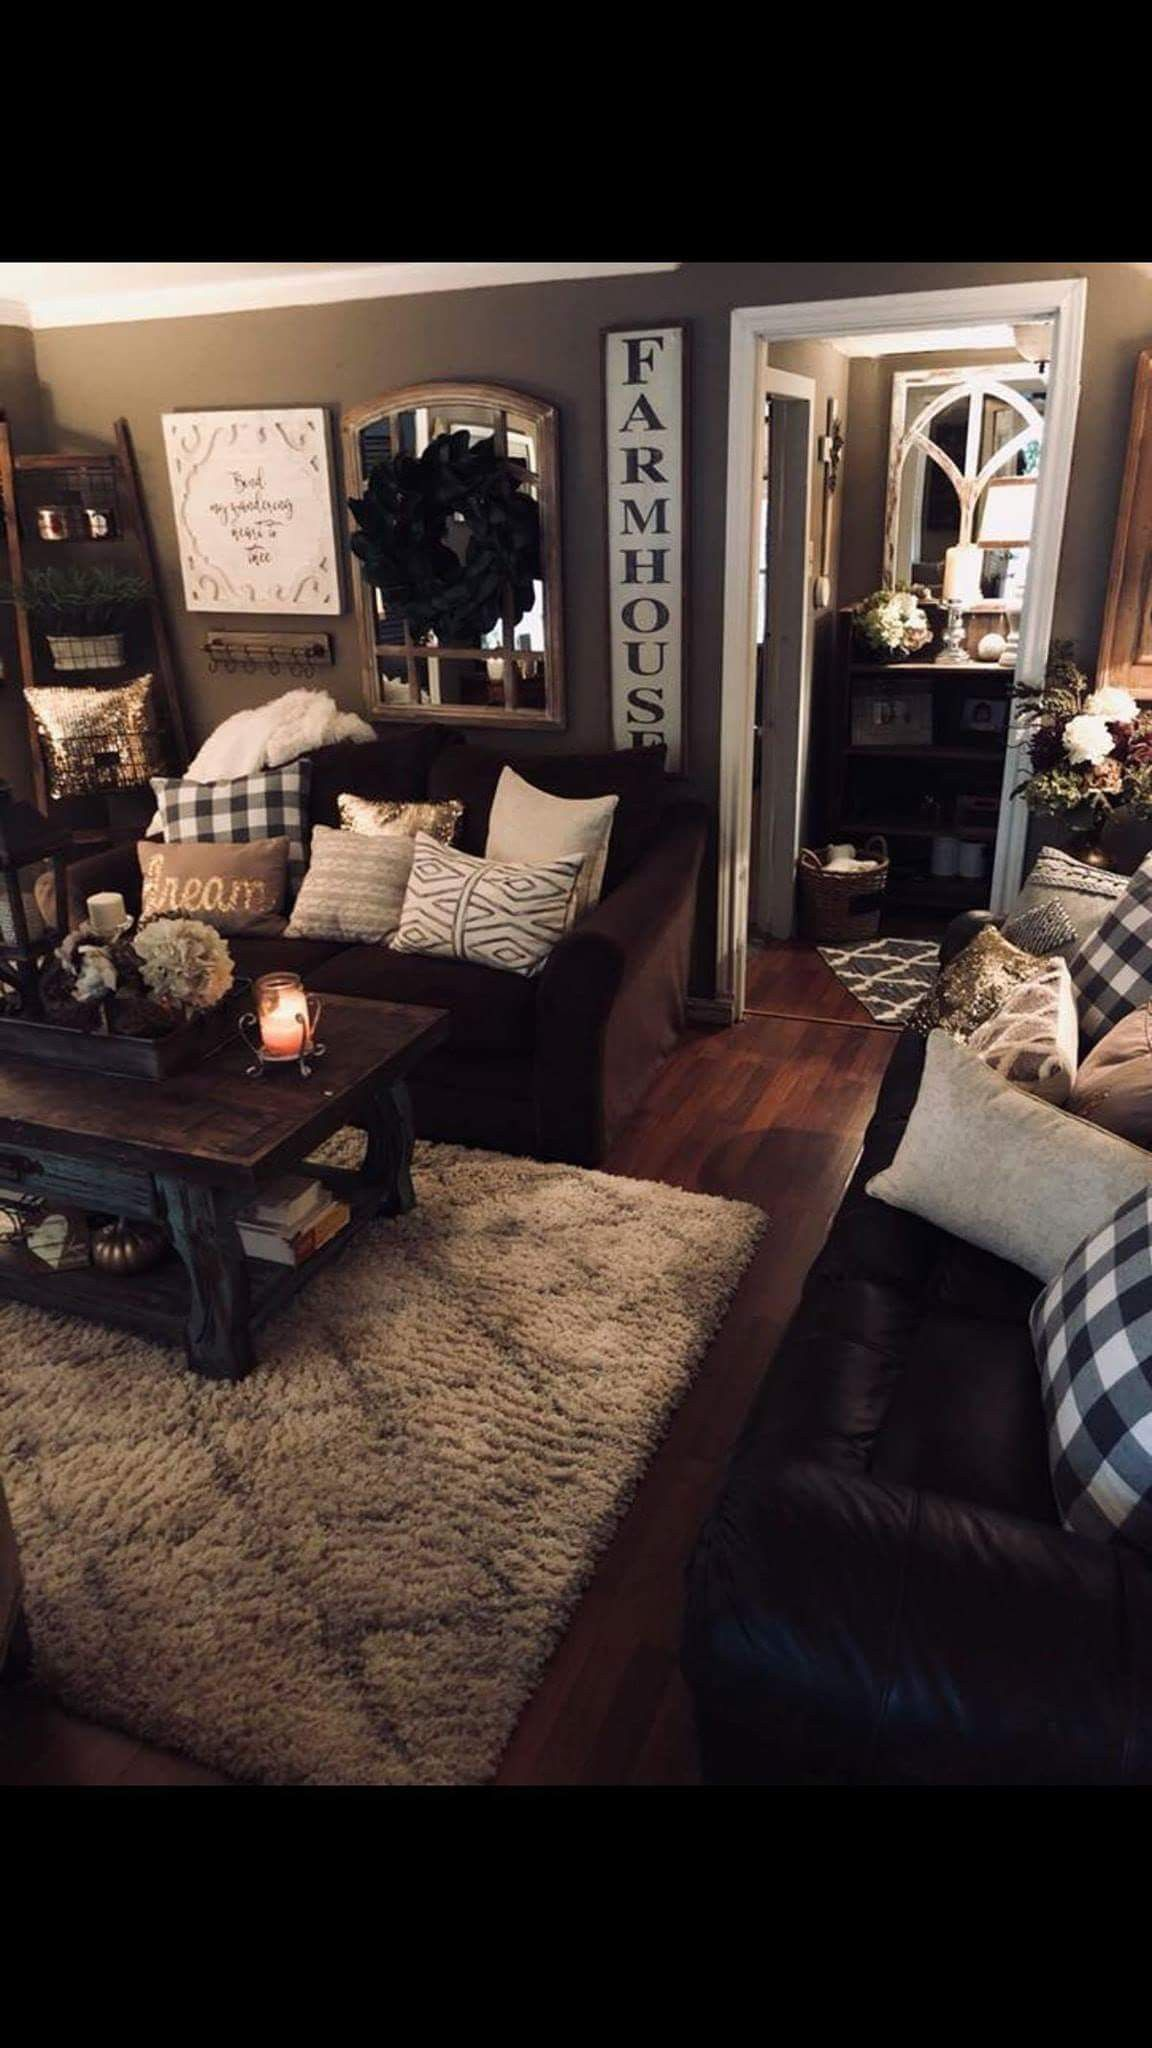 the dark tones of this room seems so relaxing homes home decor rh pinterest com